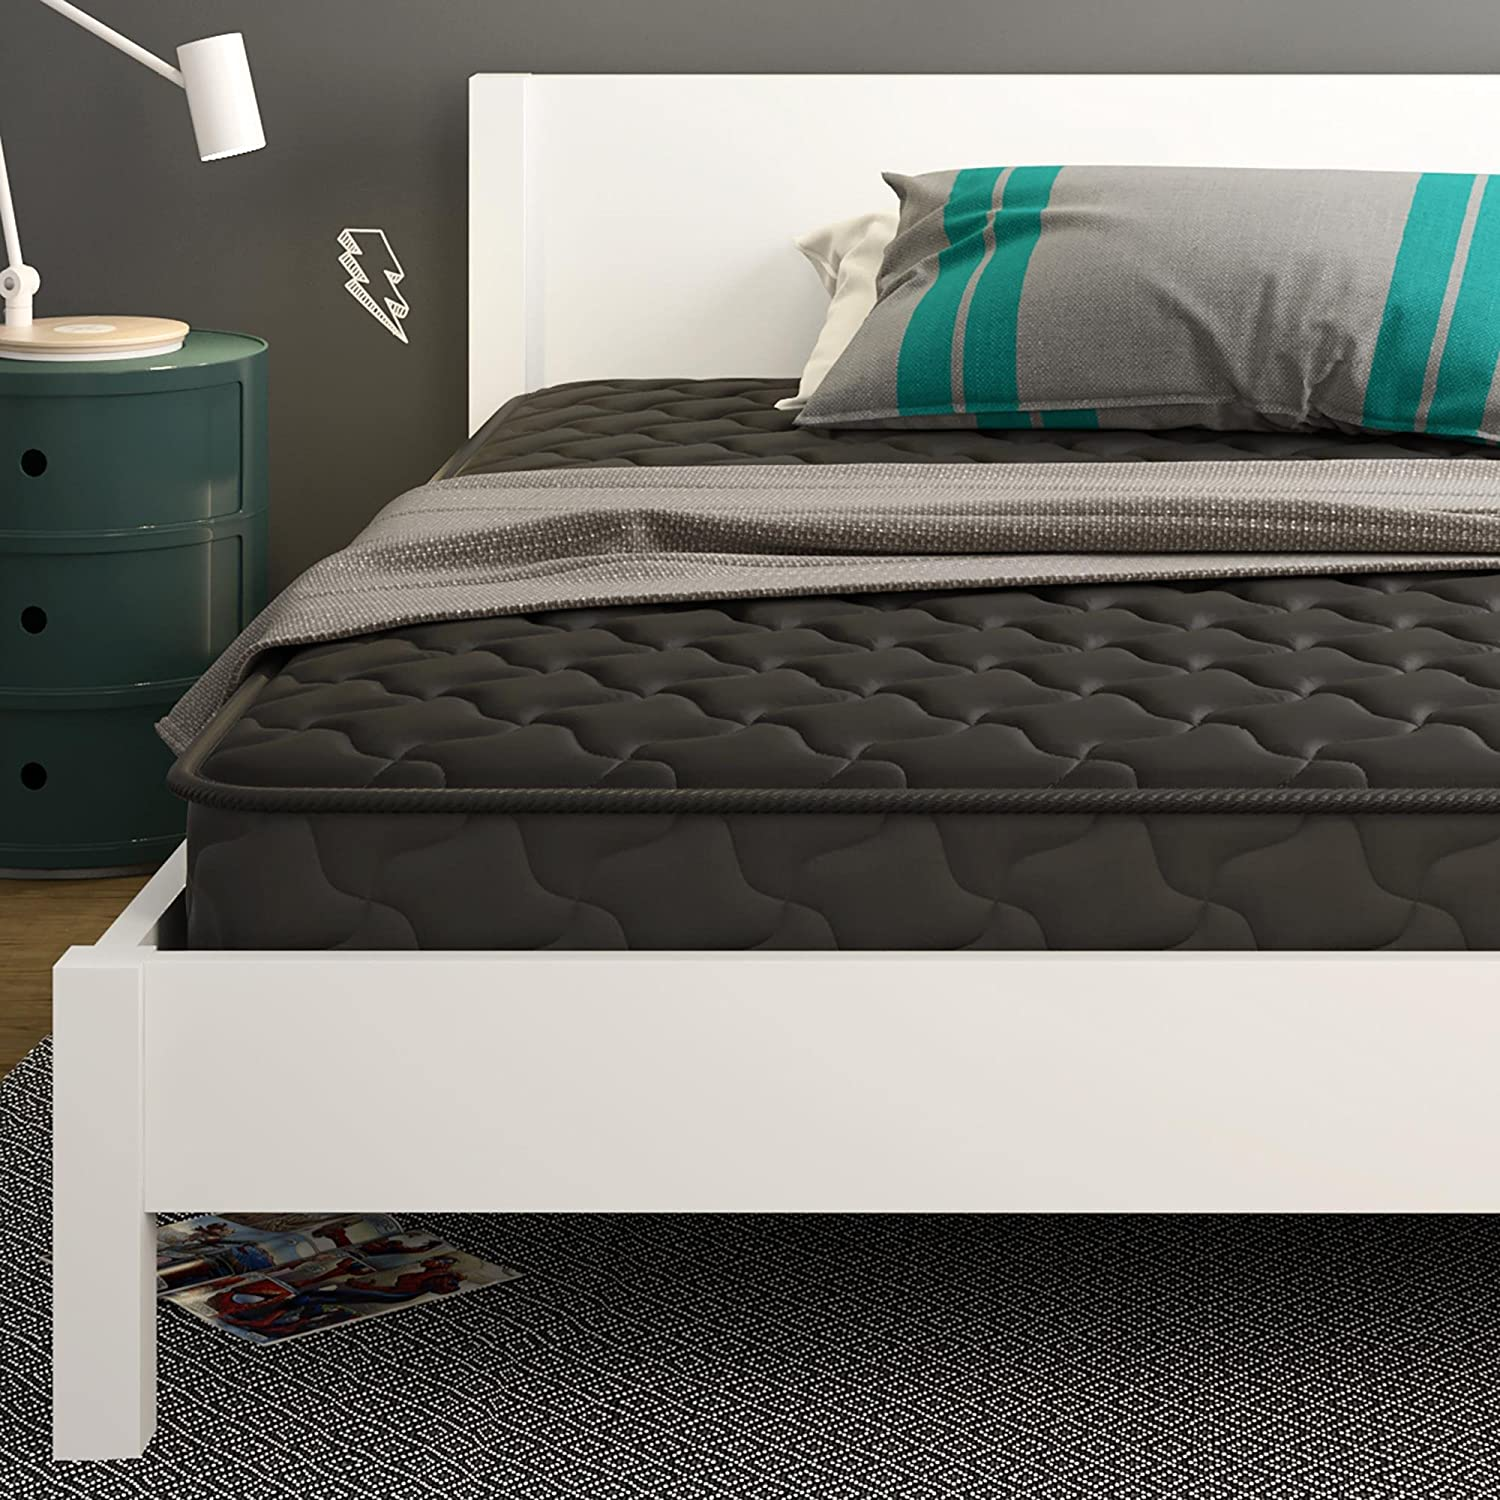 amazon com signature sleep essential 6 inch coil mattress made with